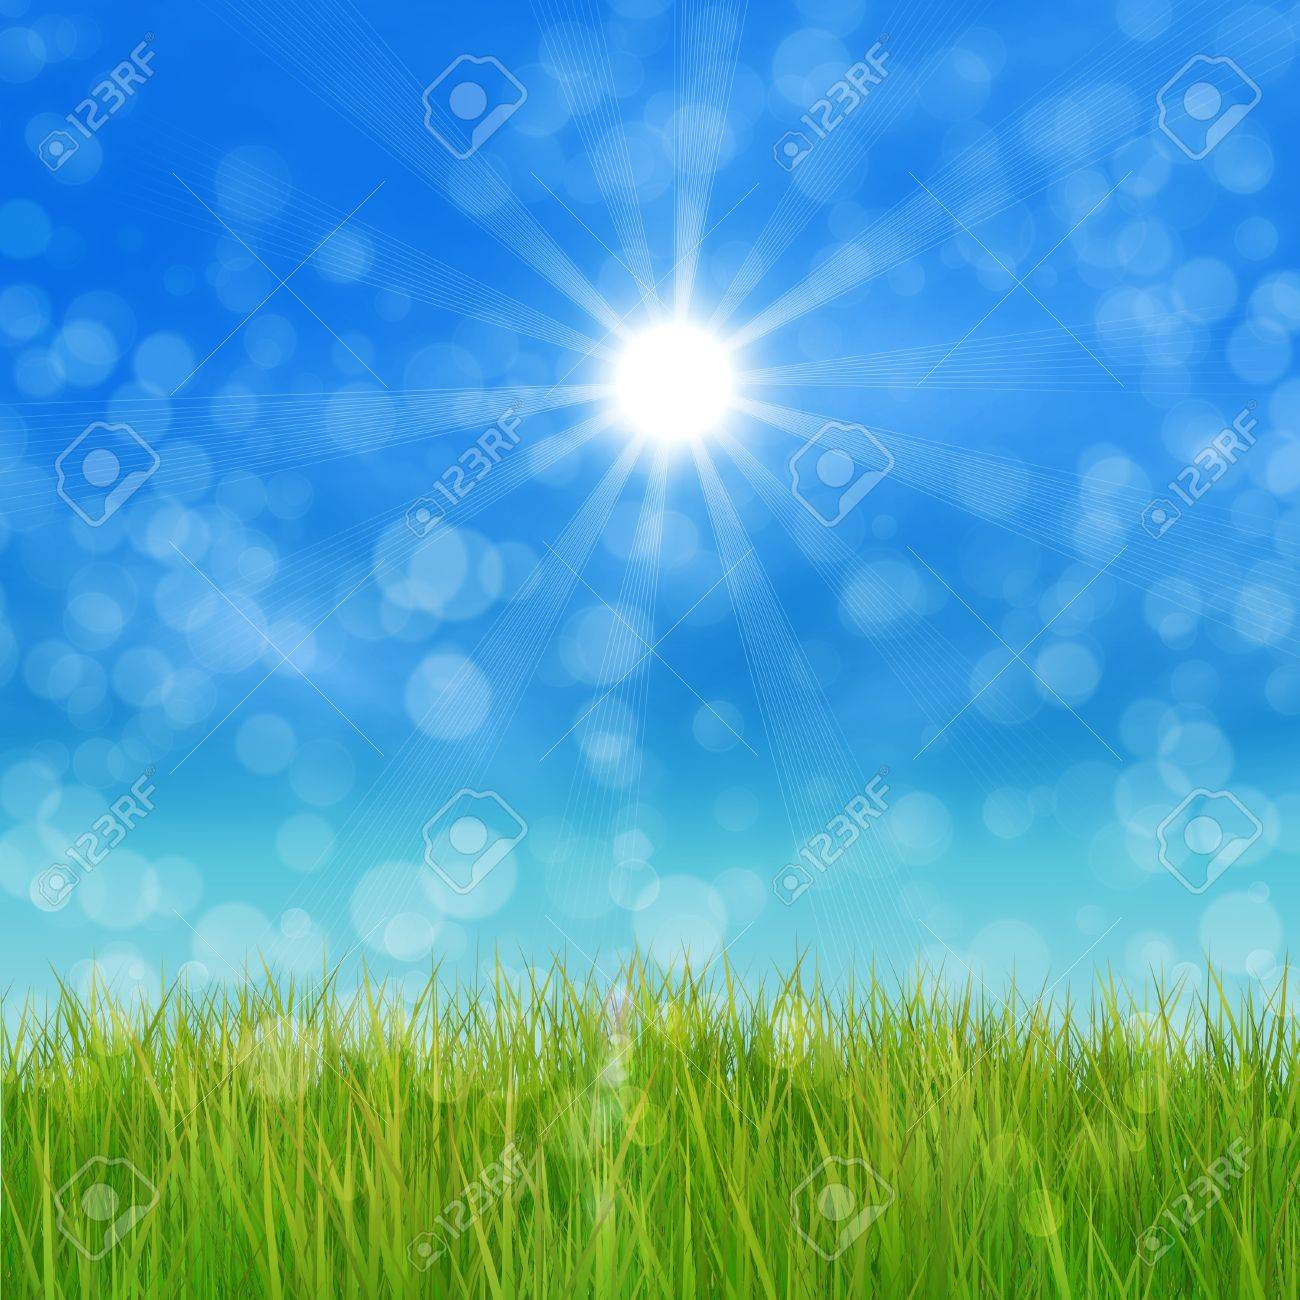 Summer nature background with 3d green grass and blue sky. Stock Photo - 18727718